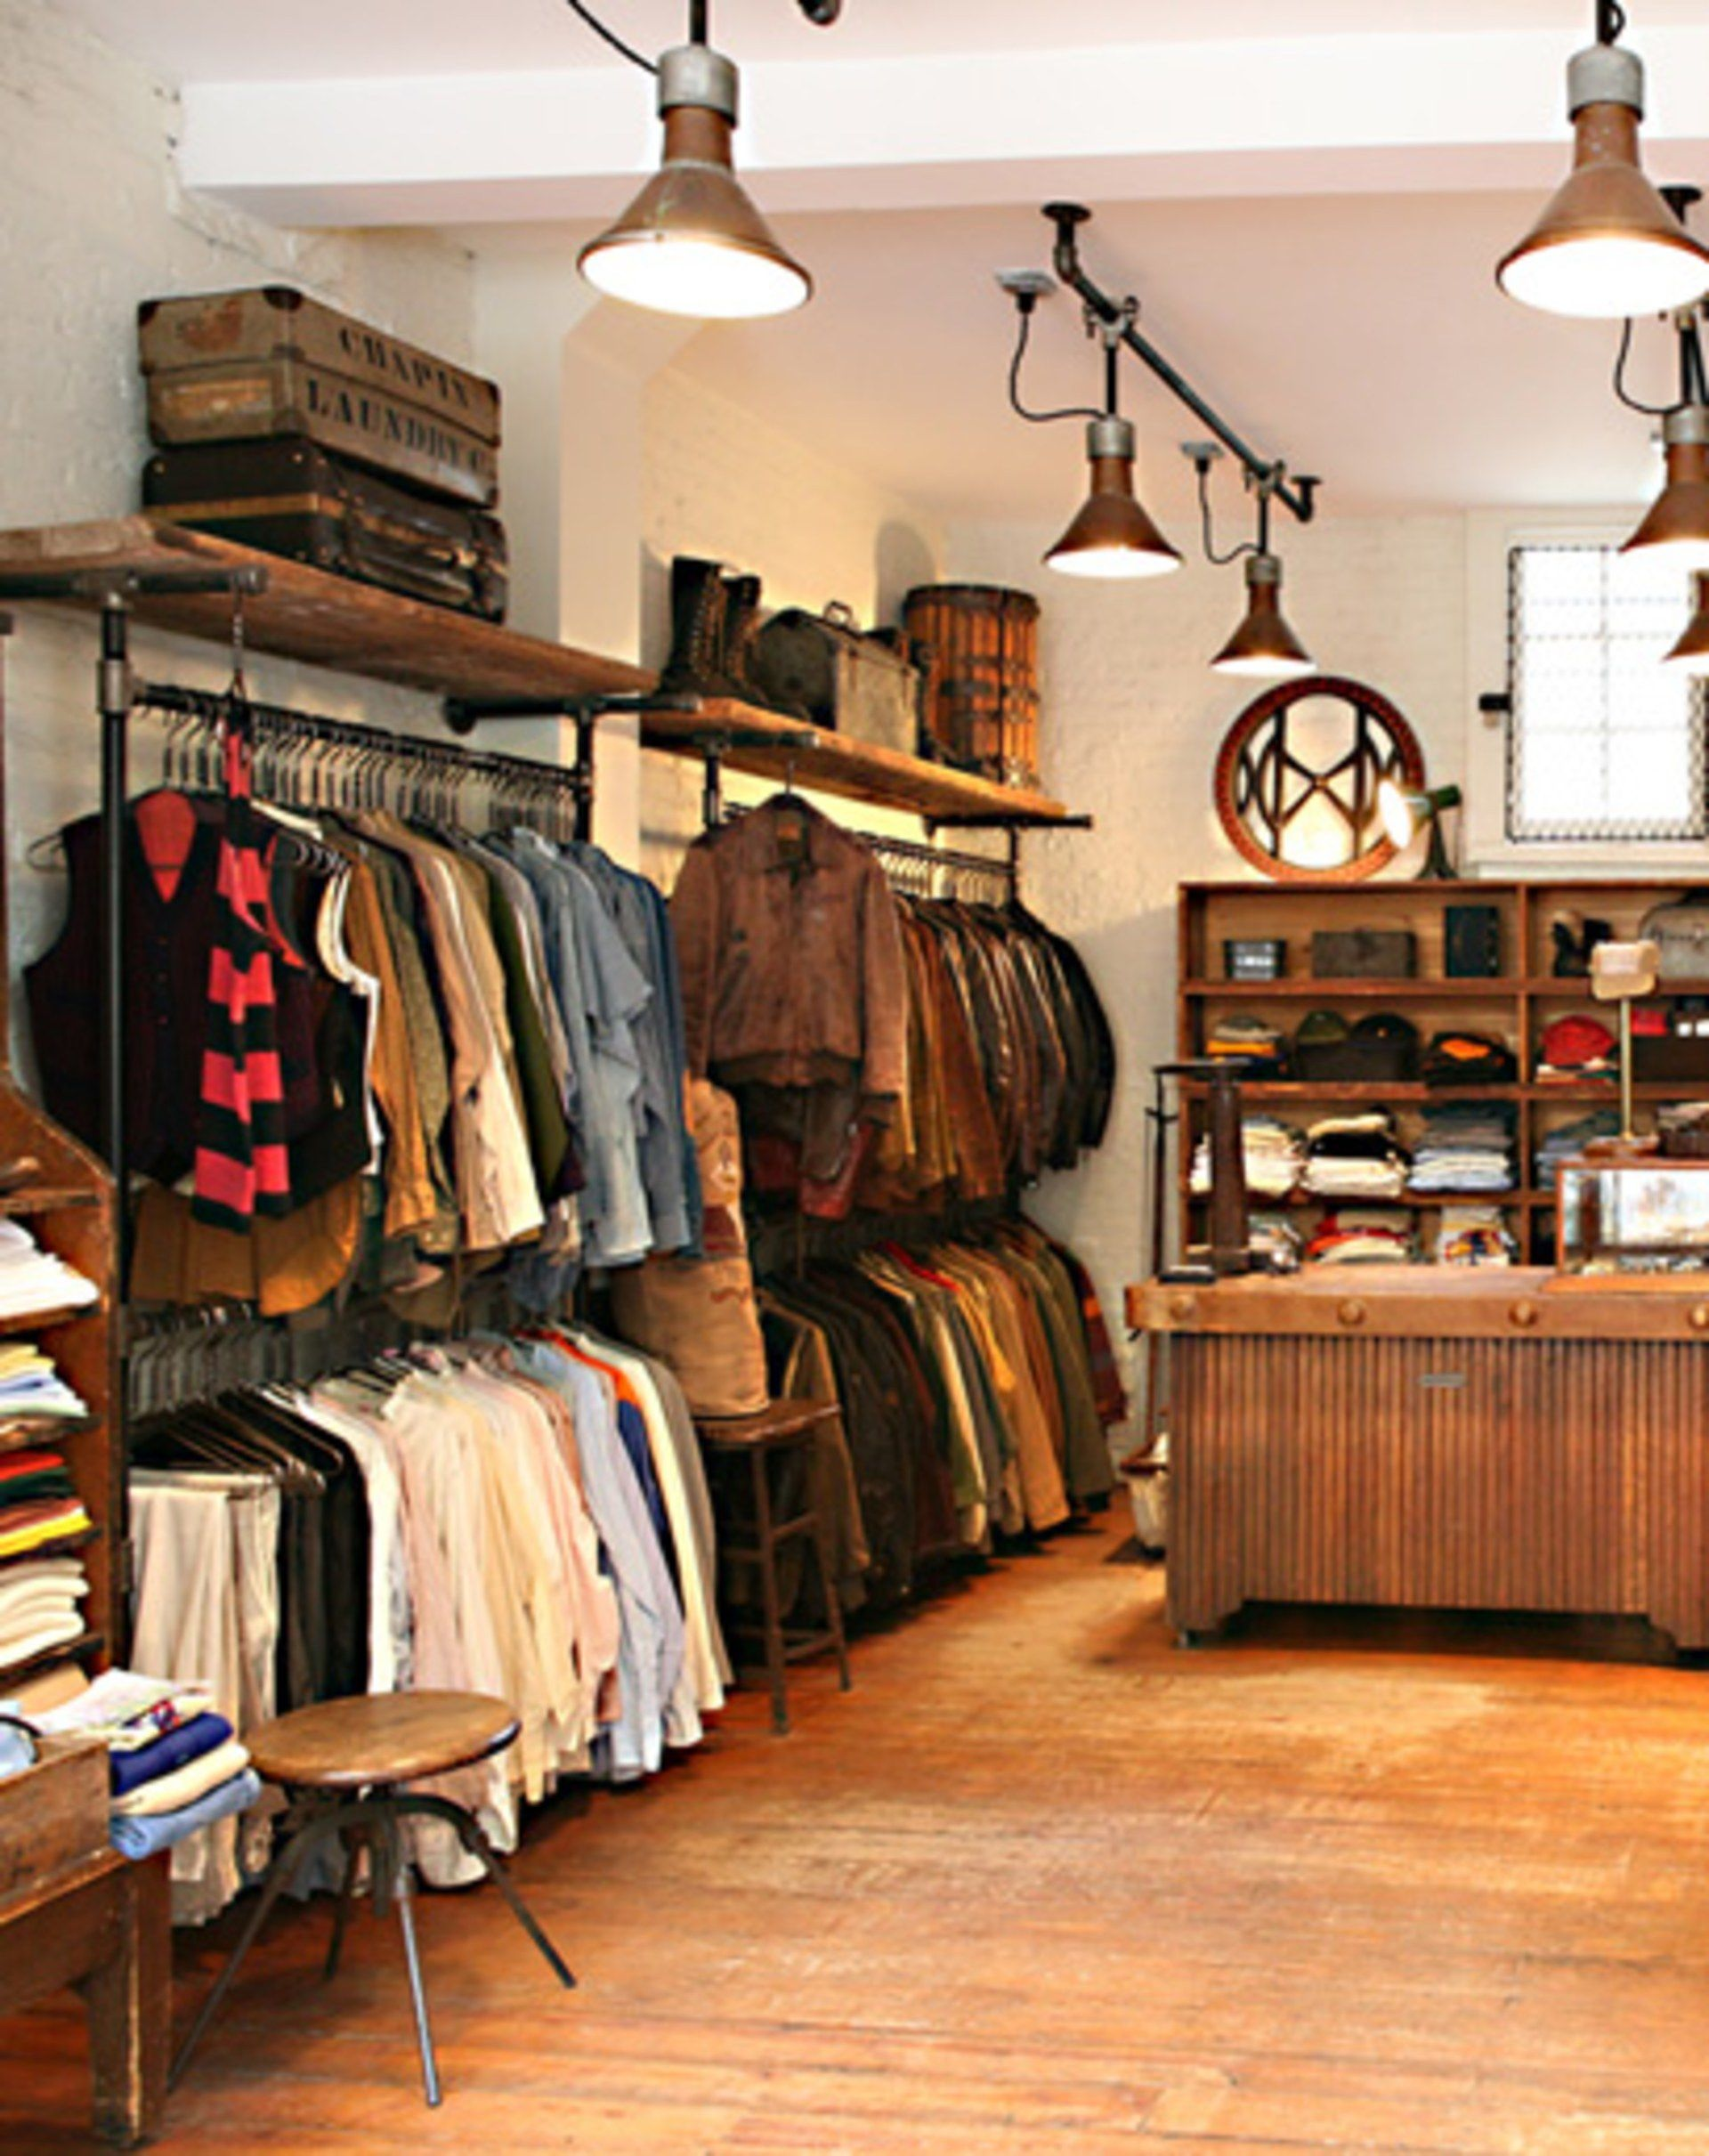 The 25 Best Vintage Stores In America With Images Store